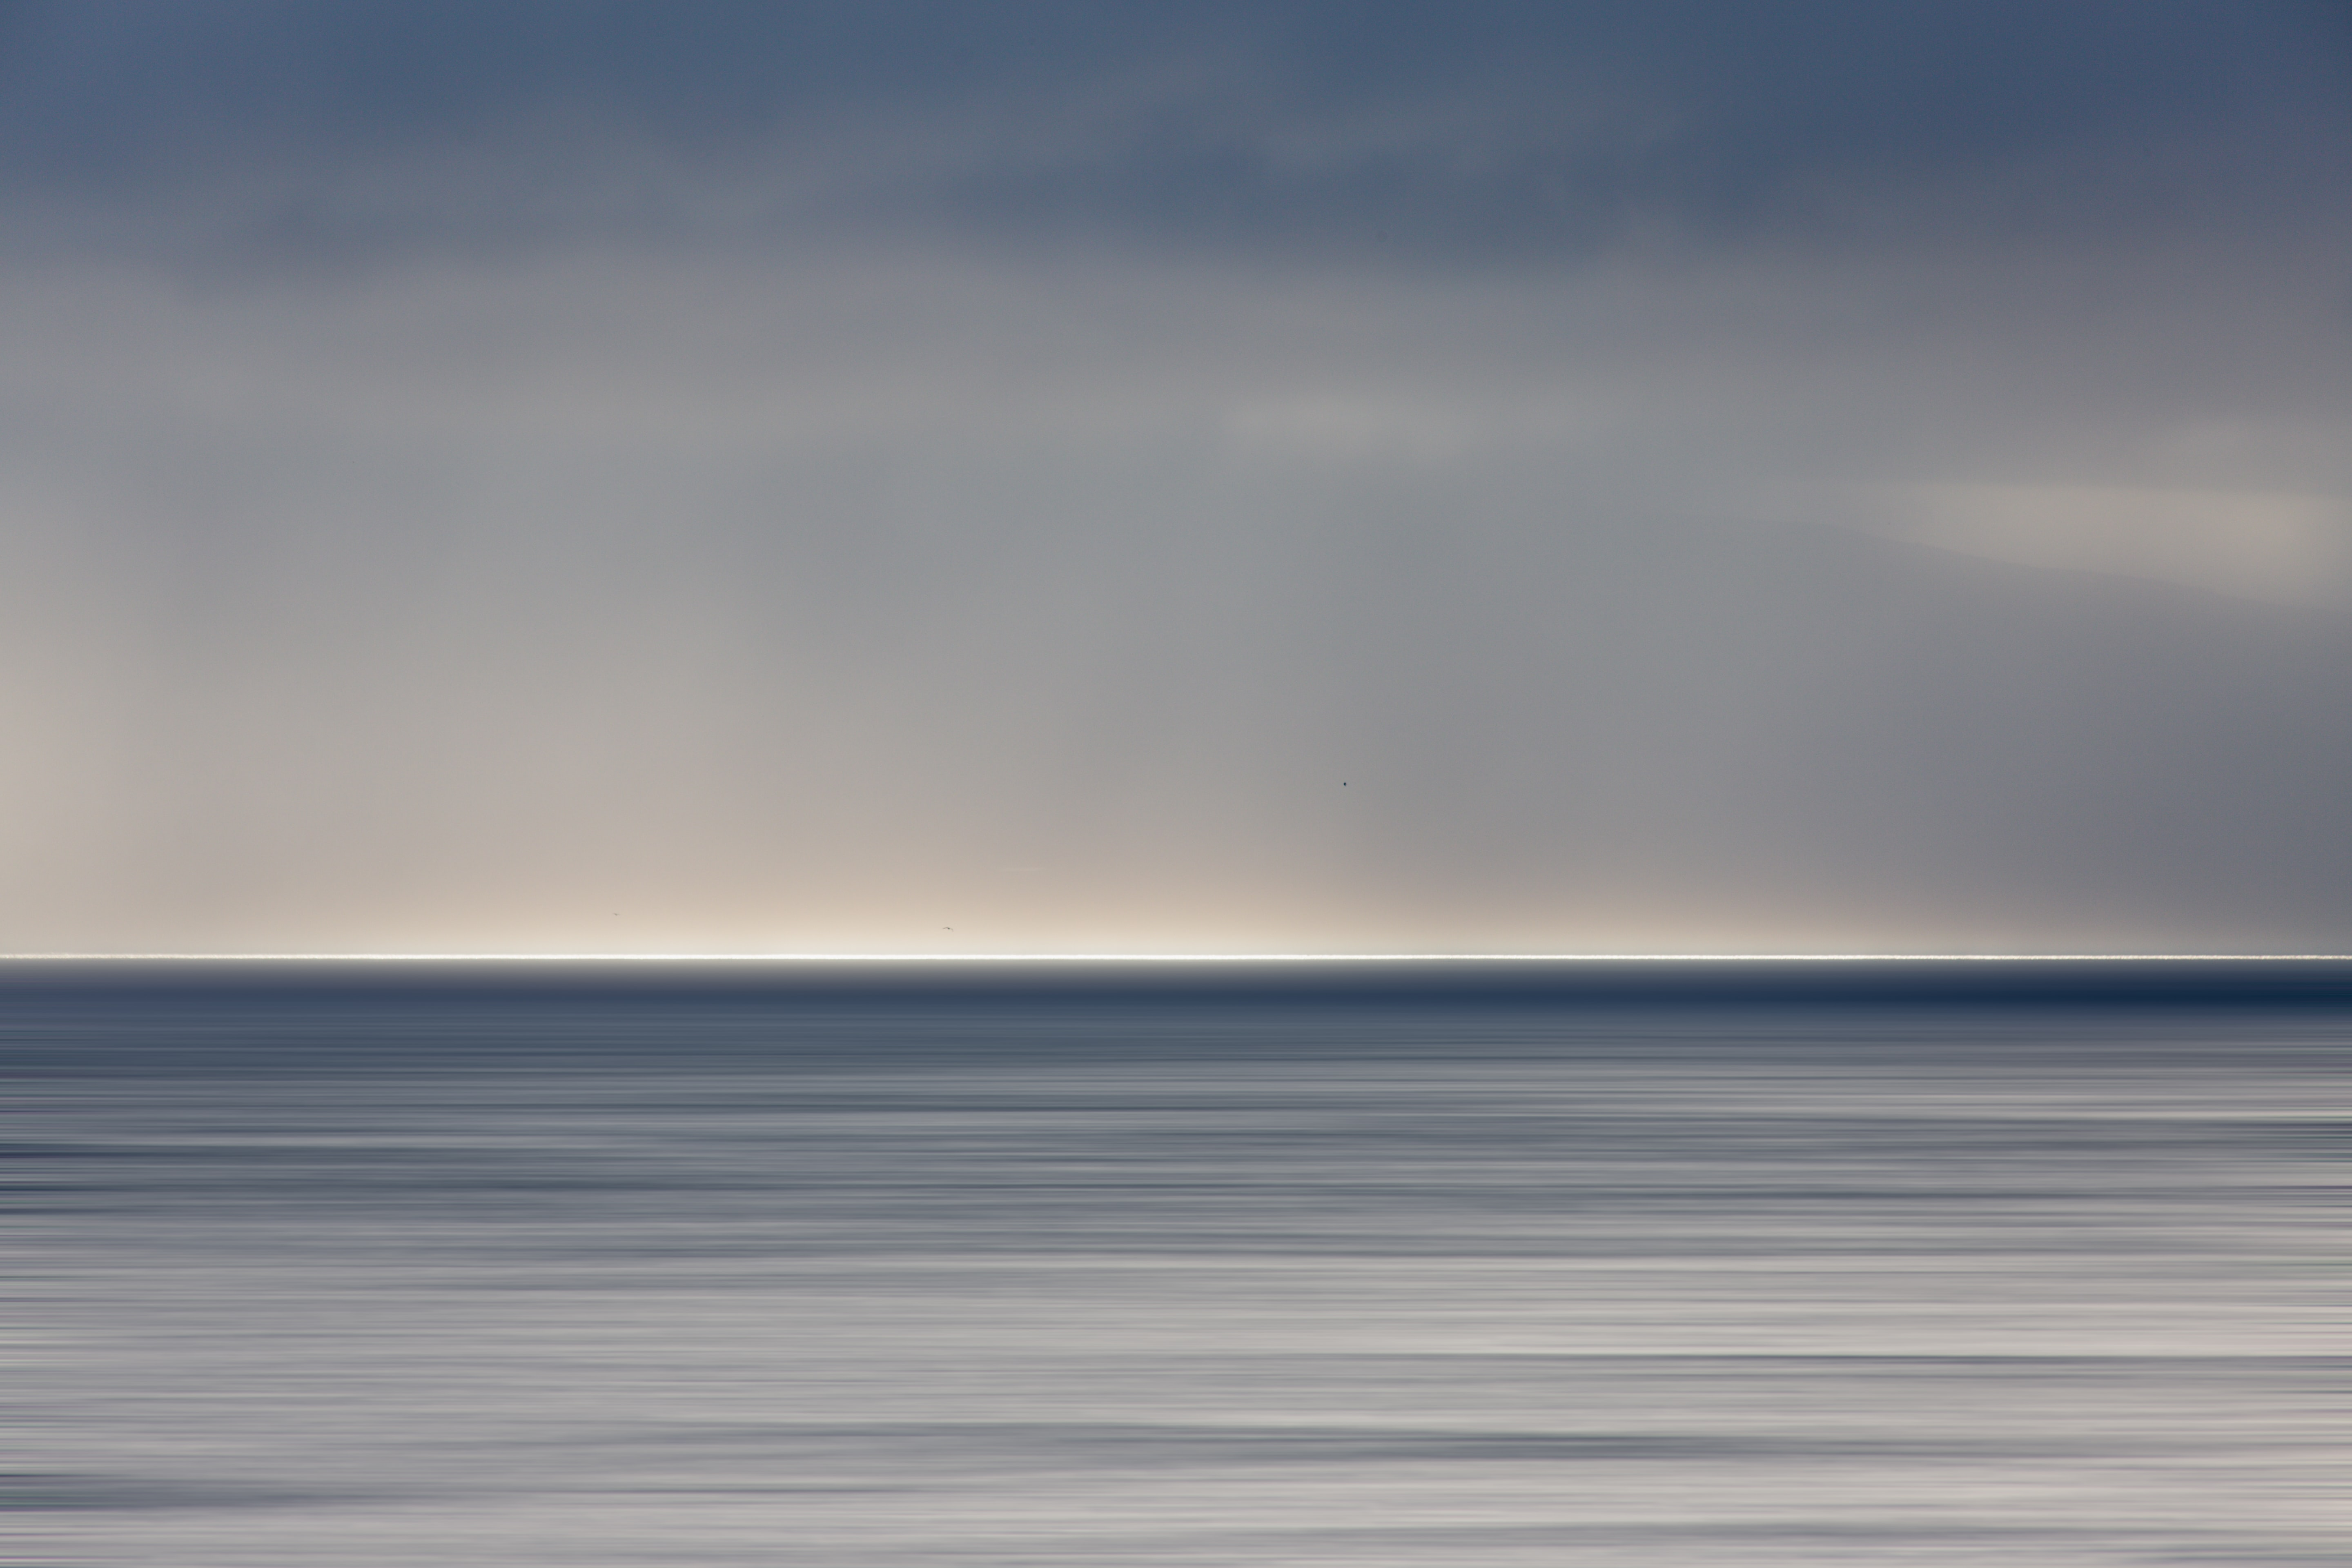 landscape photography of body of water